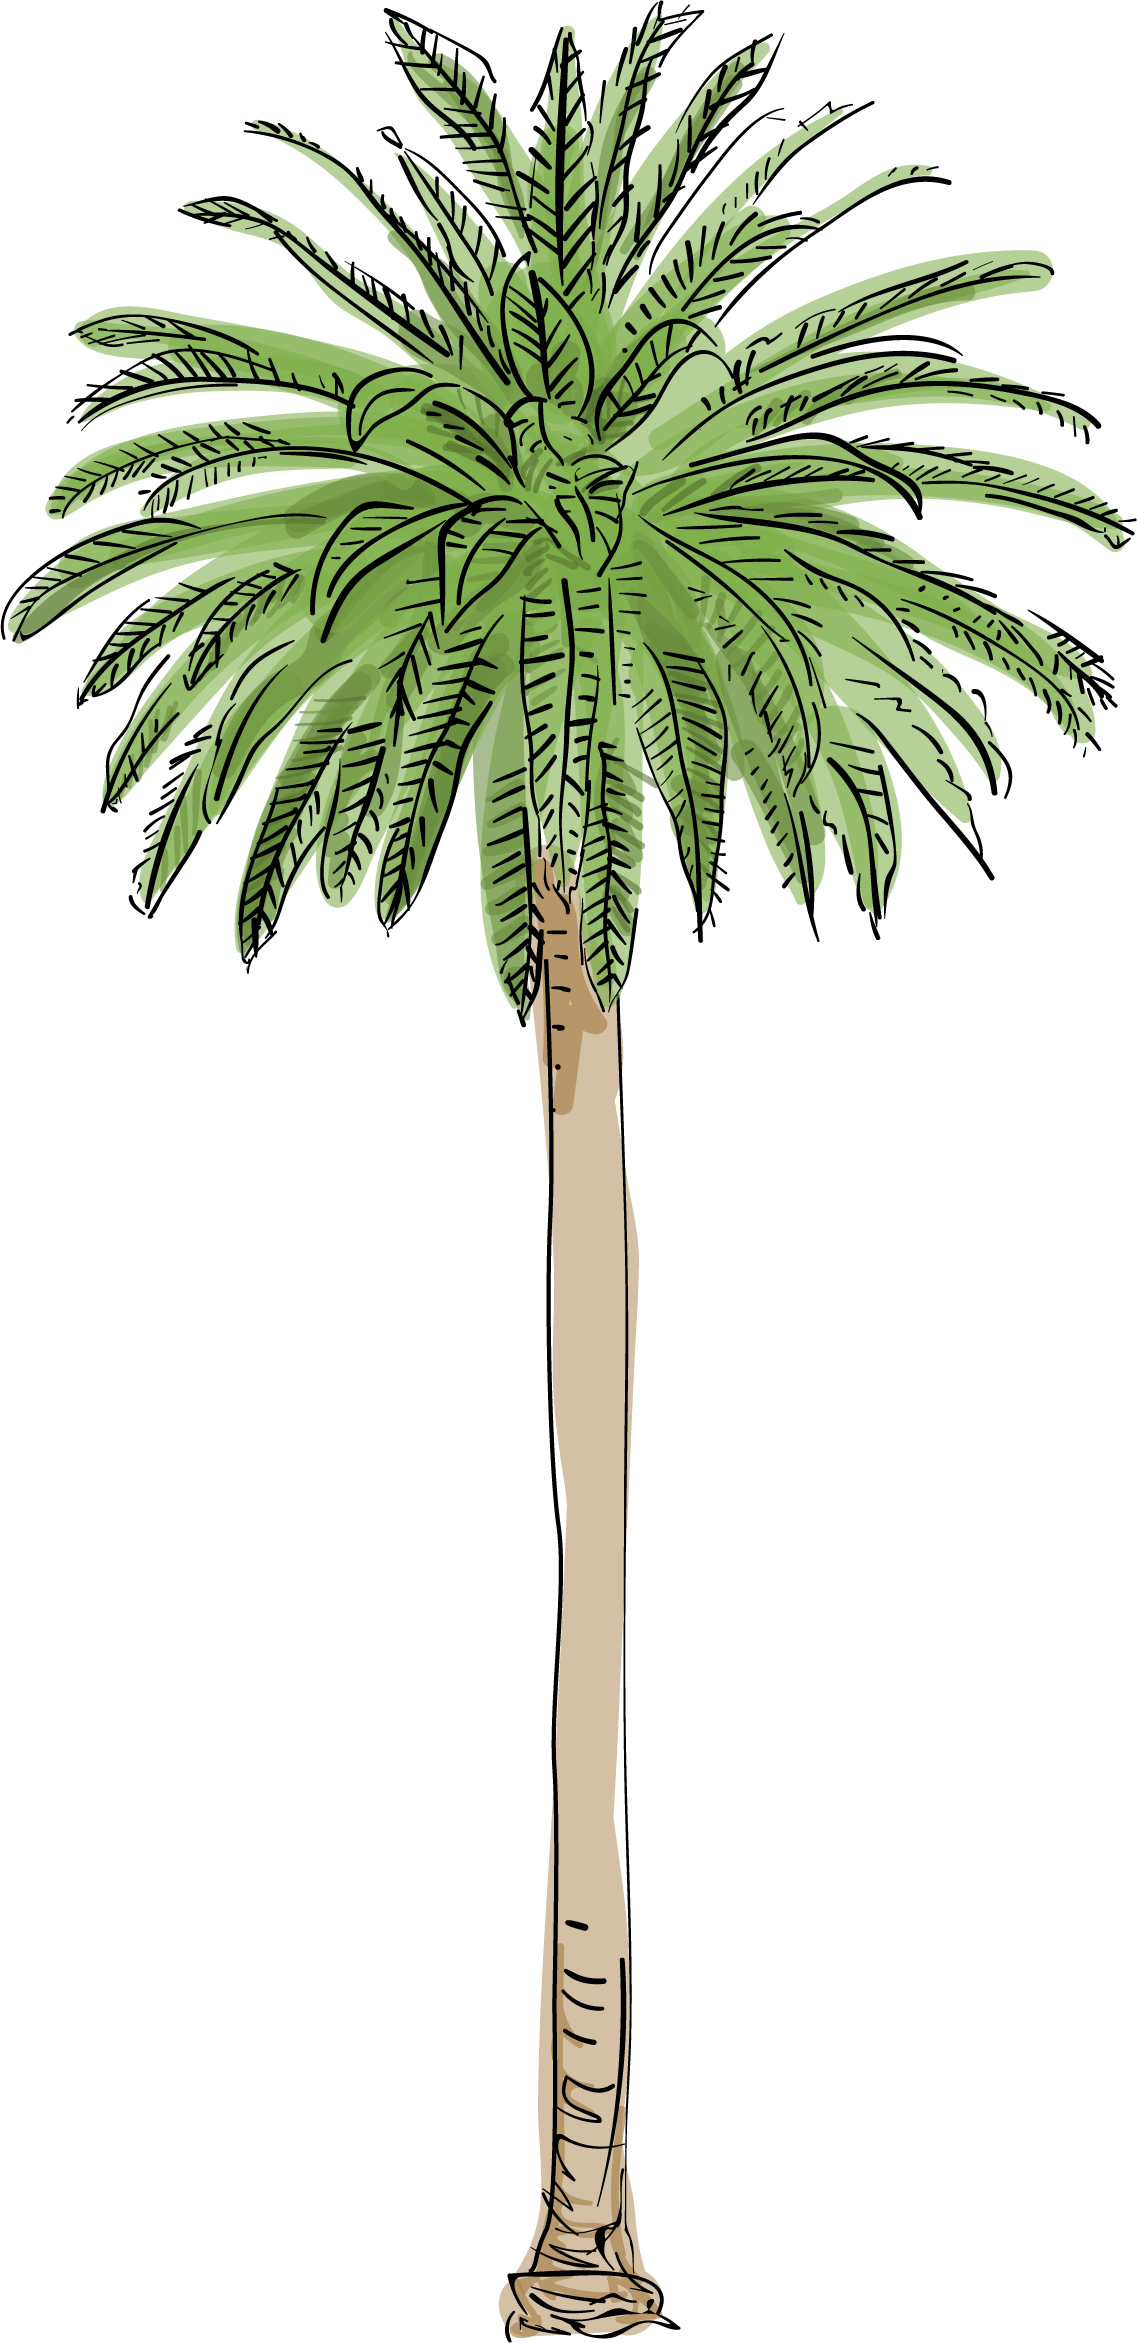 Largest images how fast. Royal palm tree png clip transparent